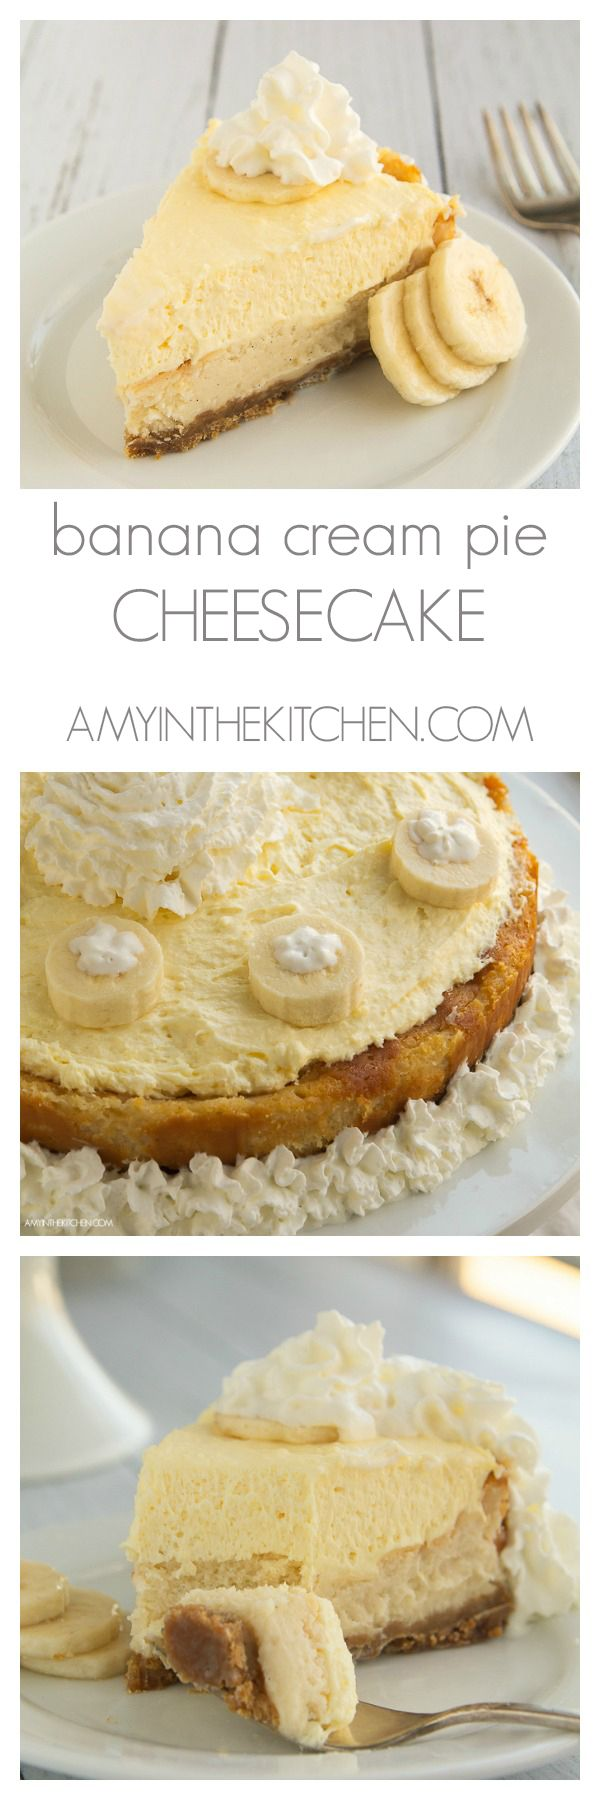 Banana Cream Pie Cheesecake is so delicious and so easy to make! The perfect dessert to bring to any party! by AmyintheKitchen.com